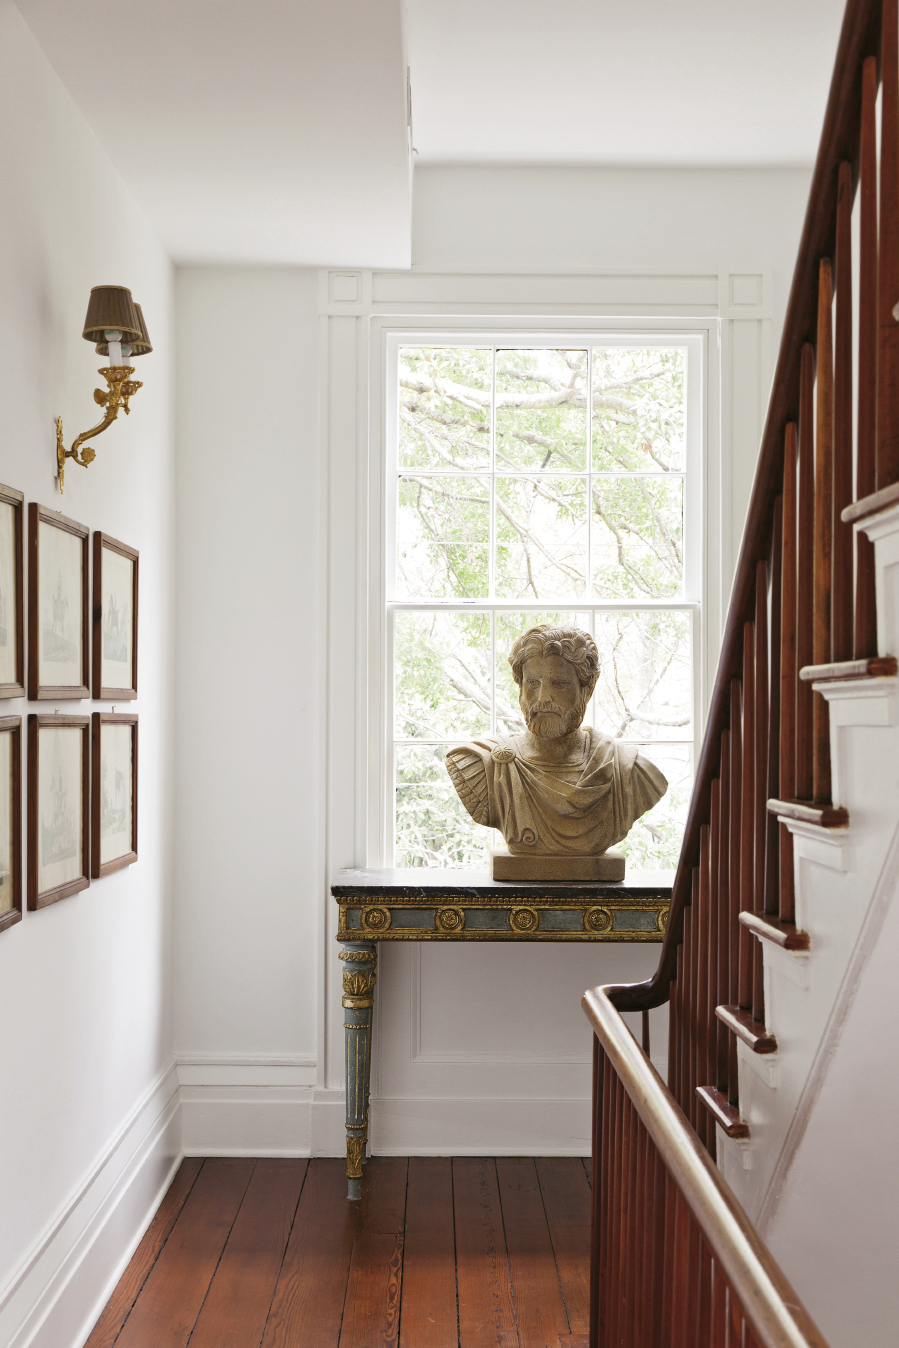 HEIRLOOM IMPORTS A bust of a Roman commander sits on a gilded 18th-century table in the second-floor hallway.